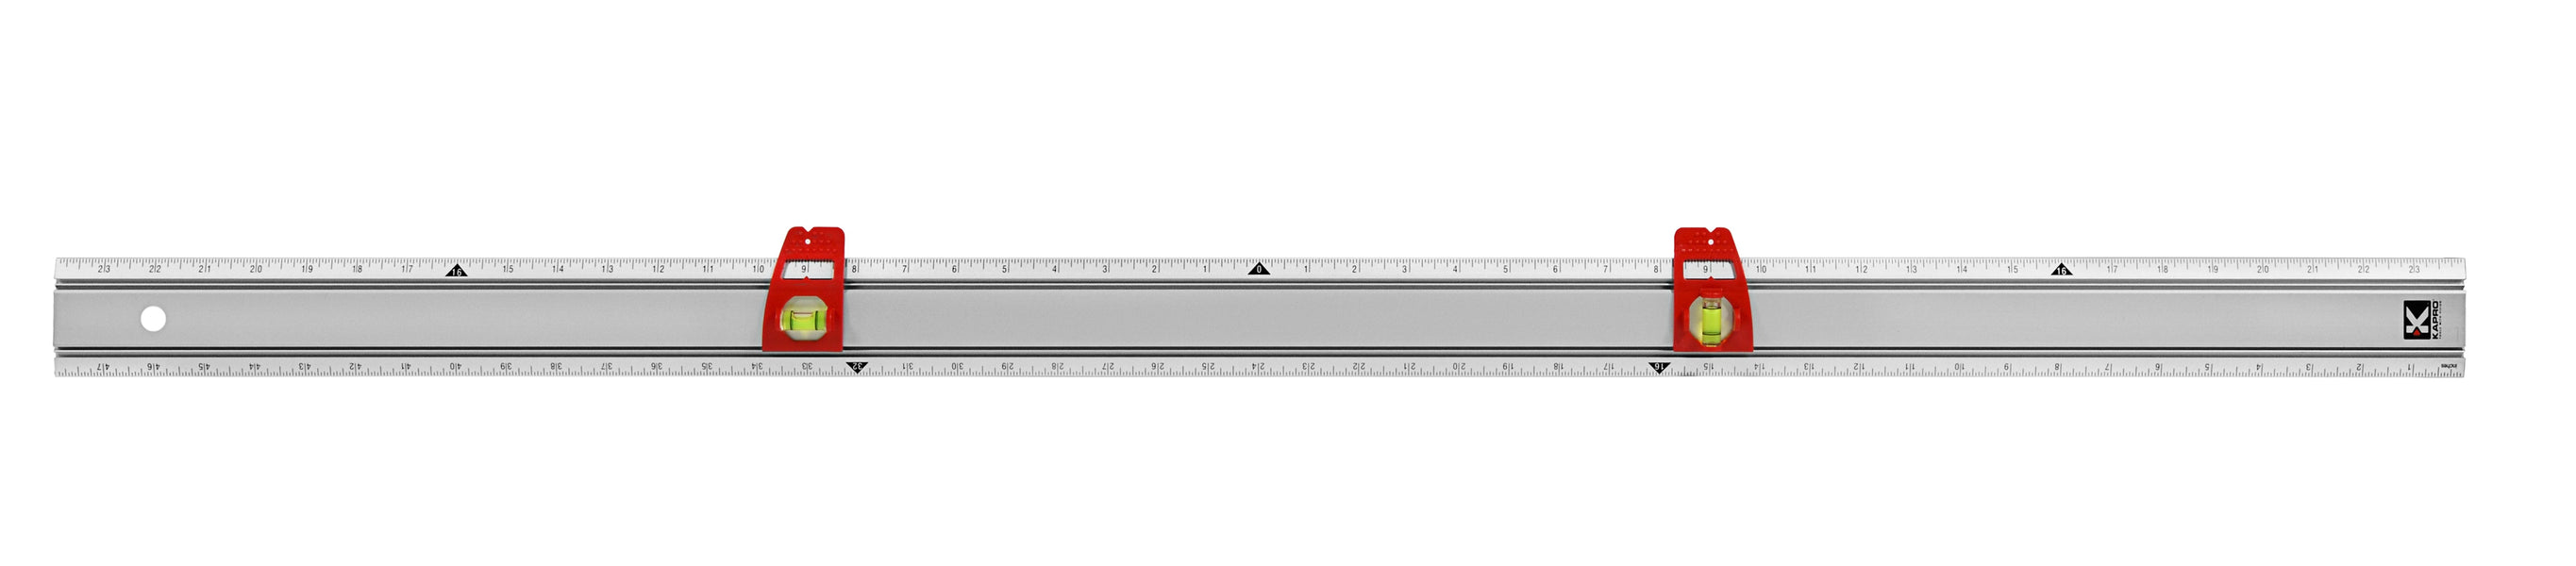 314 Set & Match Ruler with Sliding Vials with English Graduations 1/8